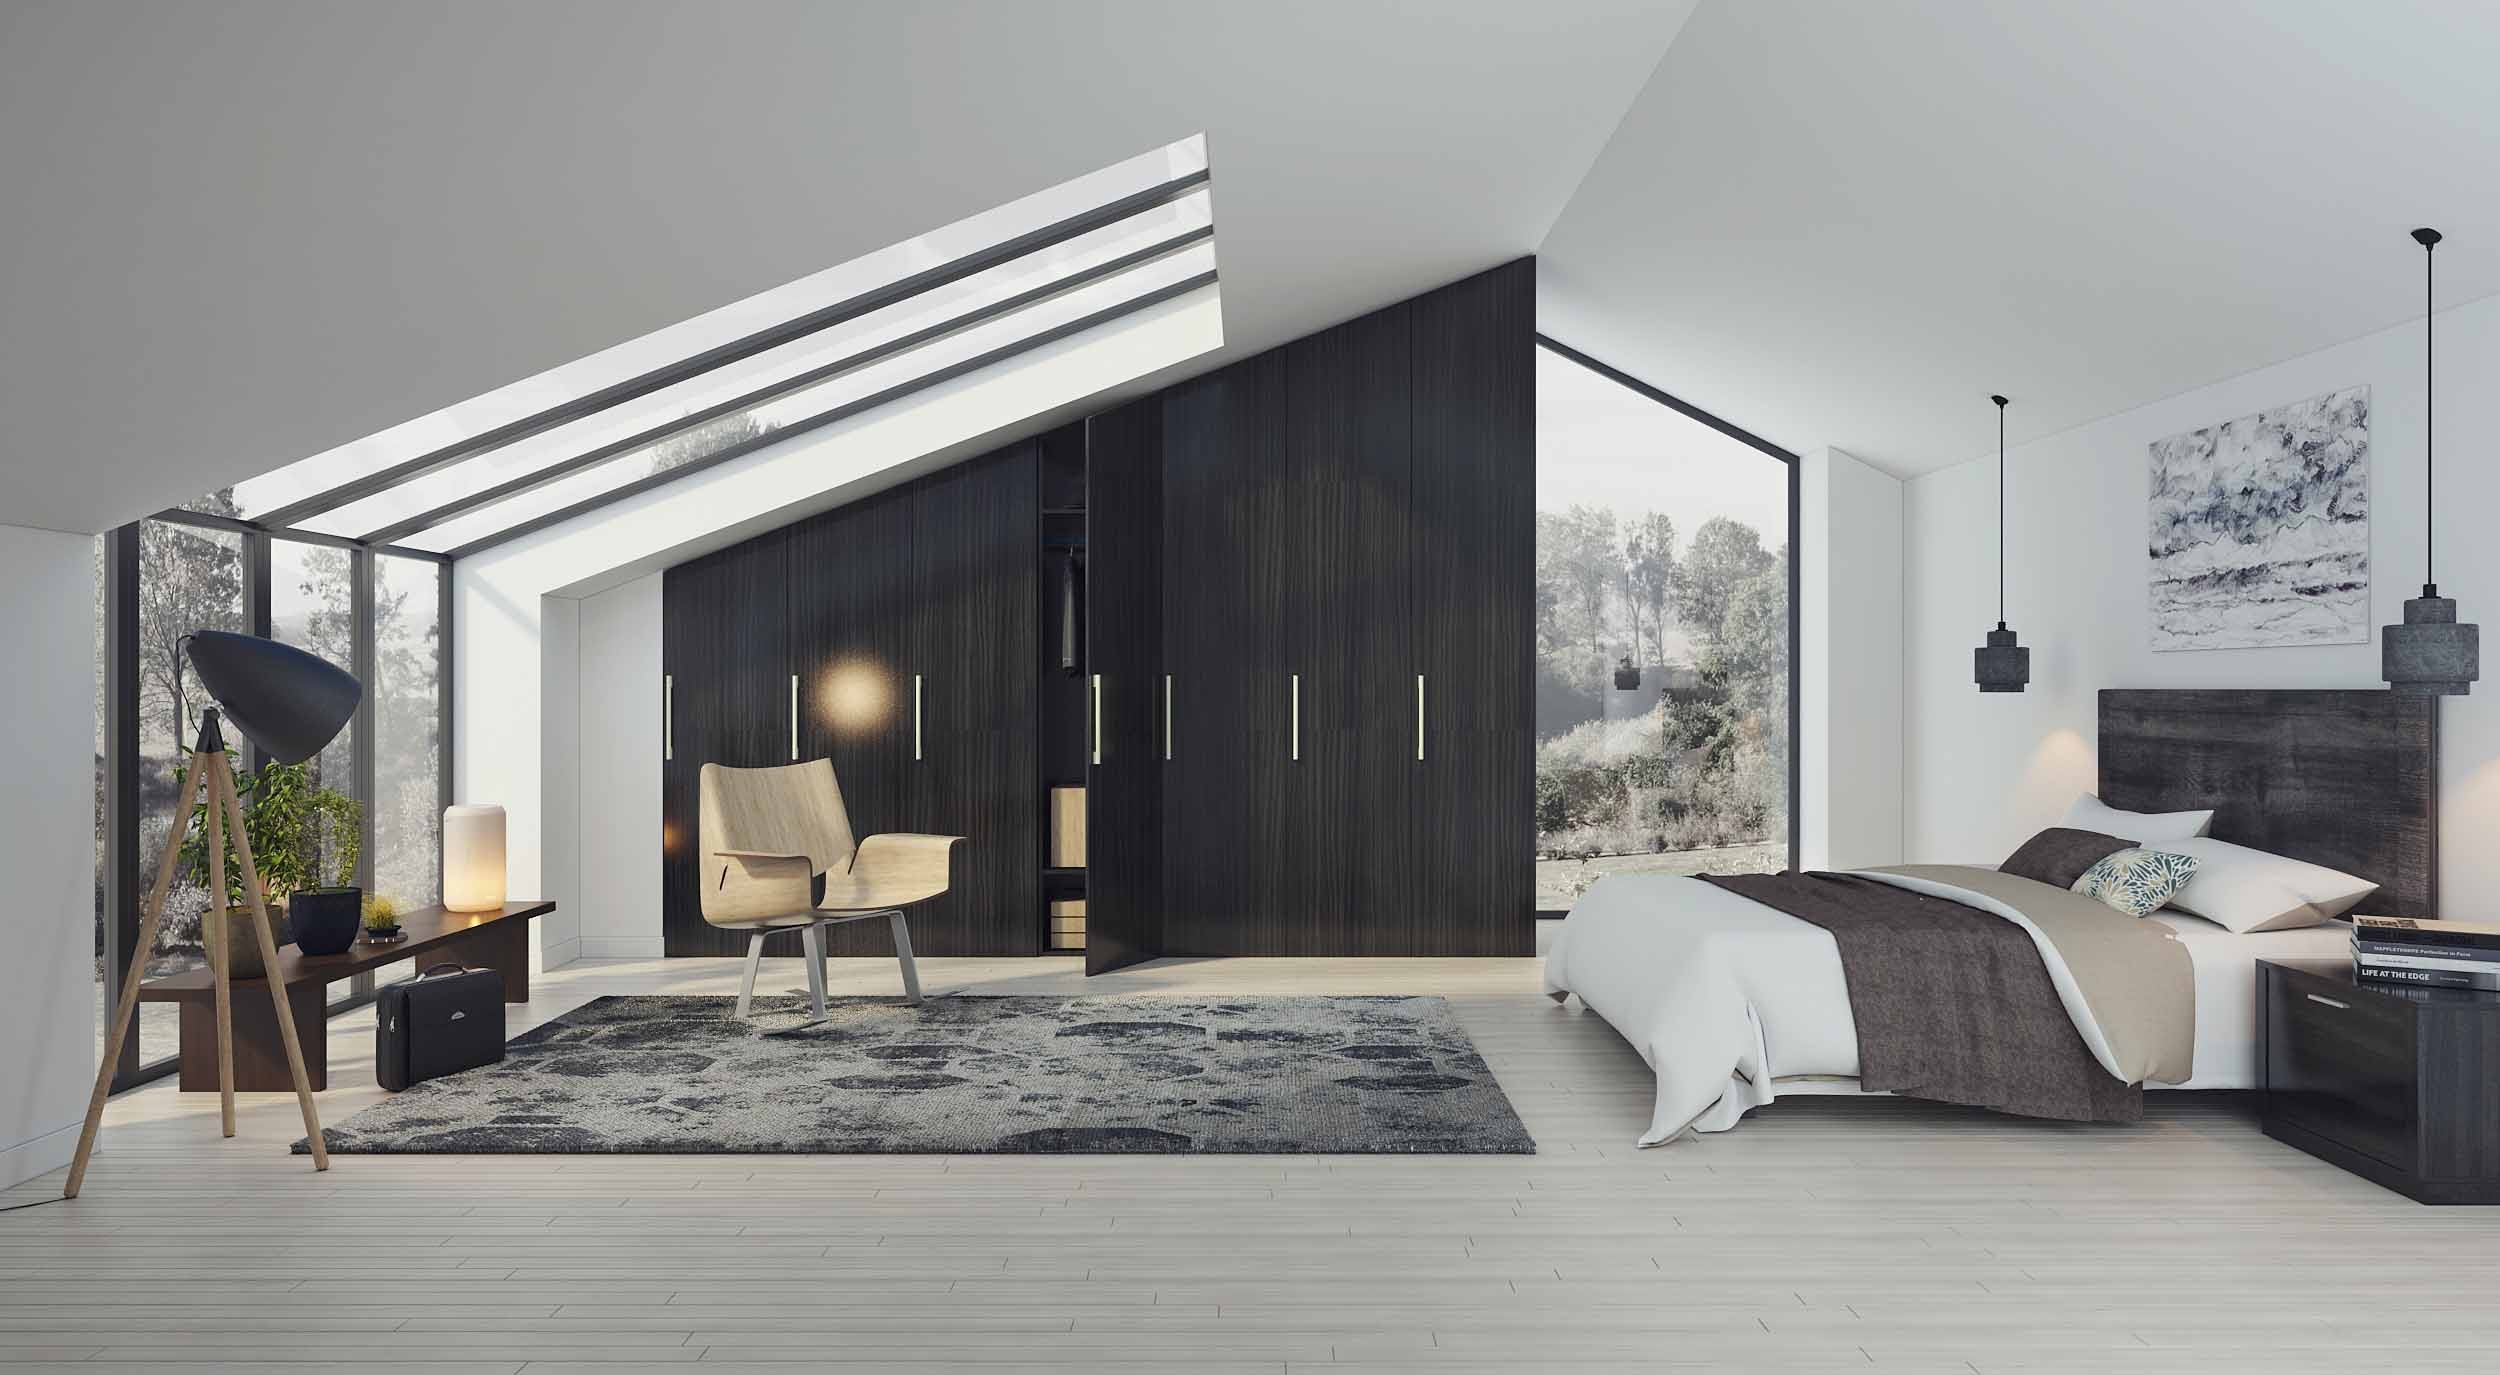 Loft Angled Fitted Wardrobe With Black Wood Grain Finish